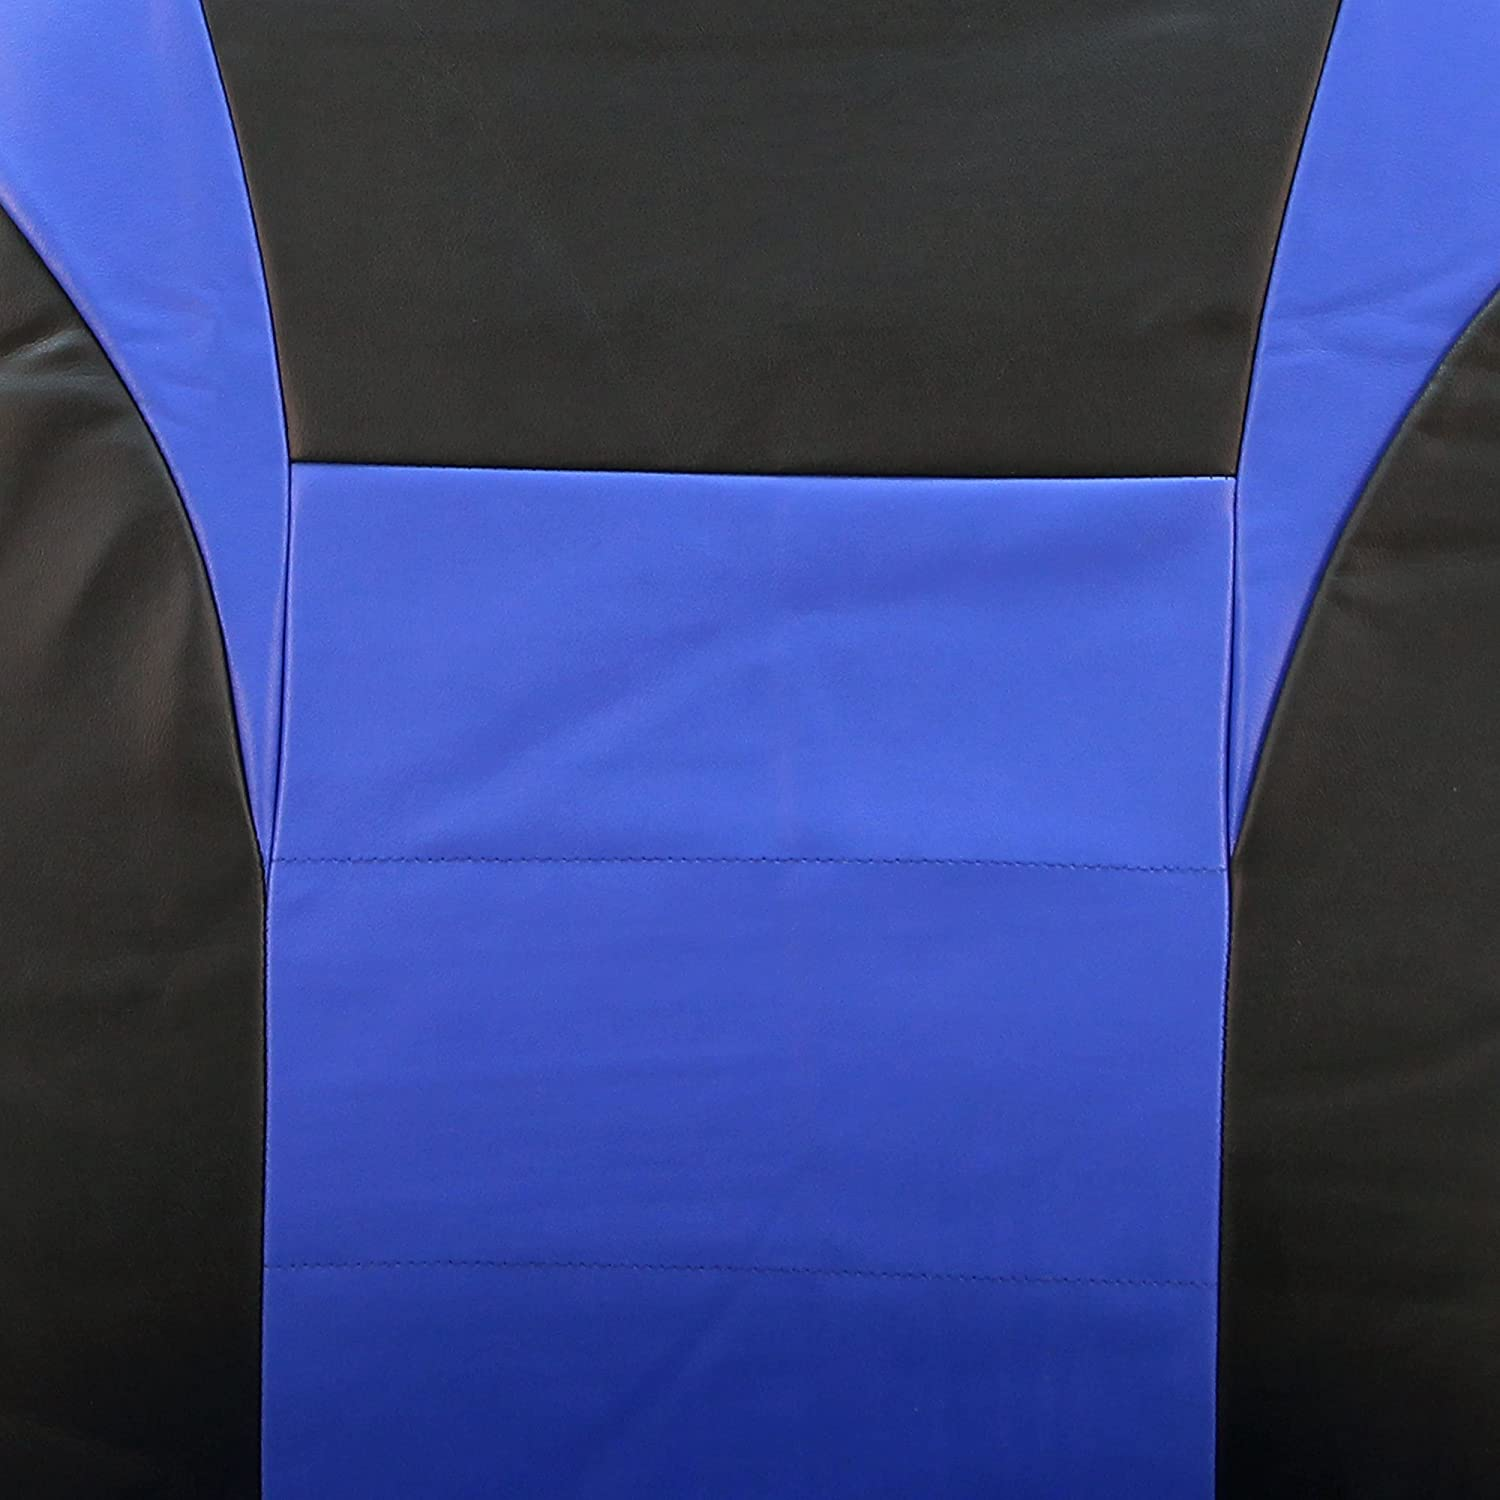 Full Set Airbag Compatible and Split Bench FH Group PU003BLUE115 Blue Racing Style Faux Leather Seat Cover